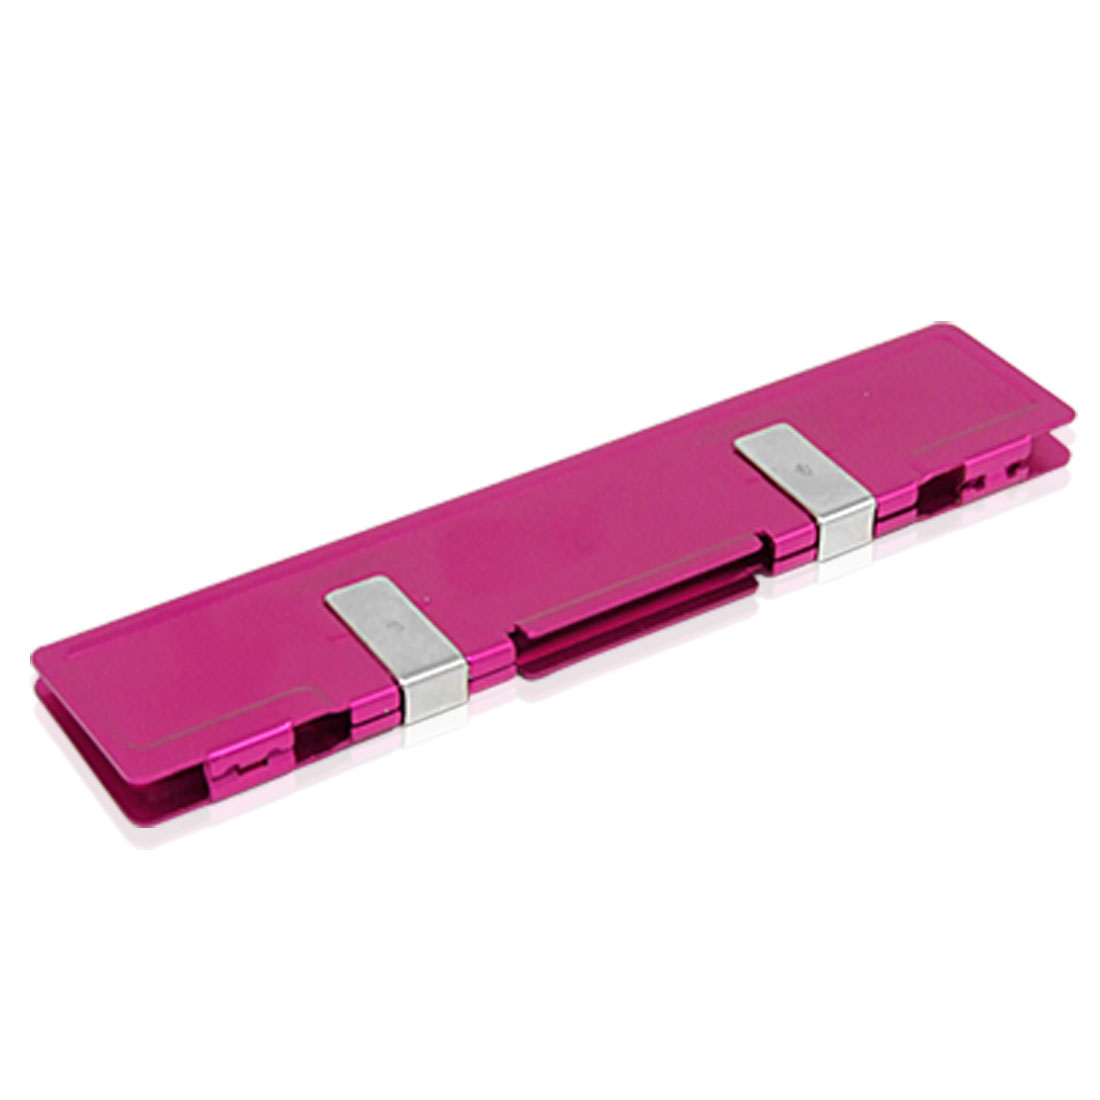 Fuchsia Heatsink Shim Spreader Cooler Cooling for SDR DDR RAM Memory